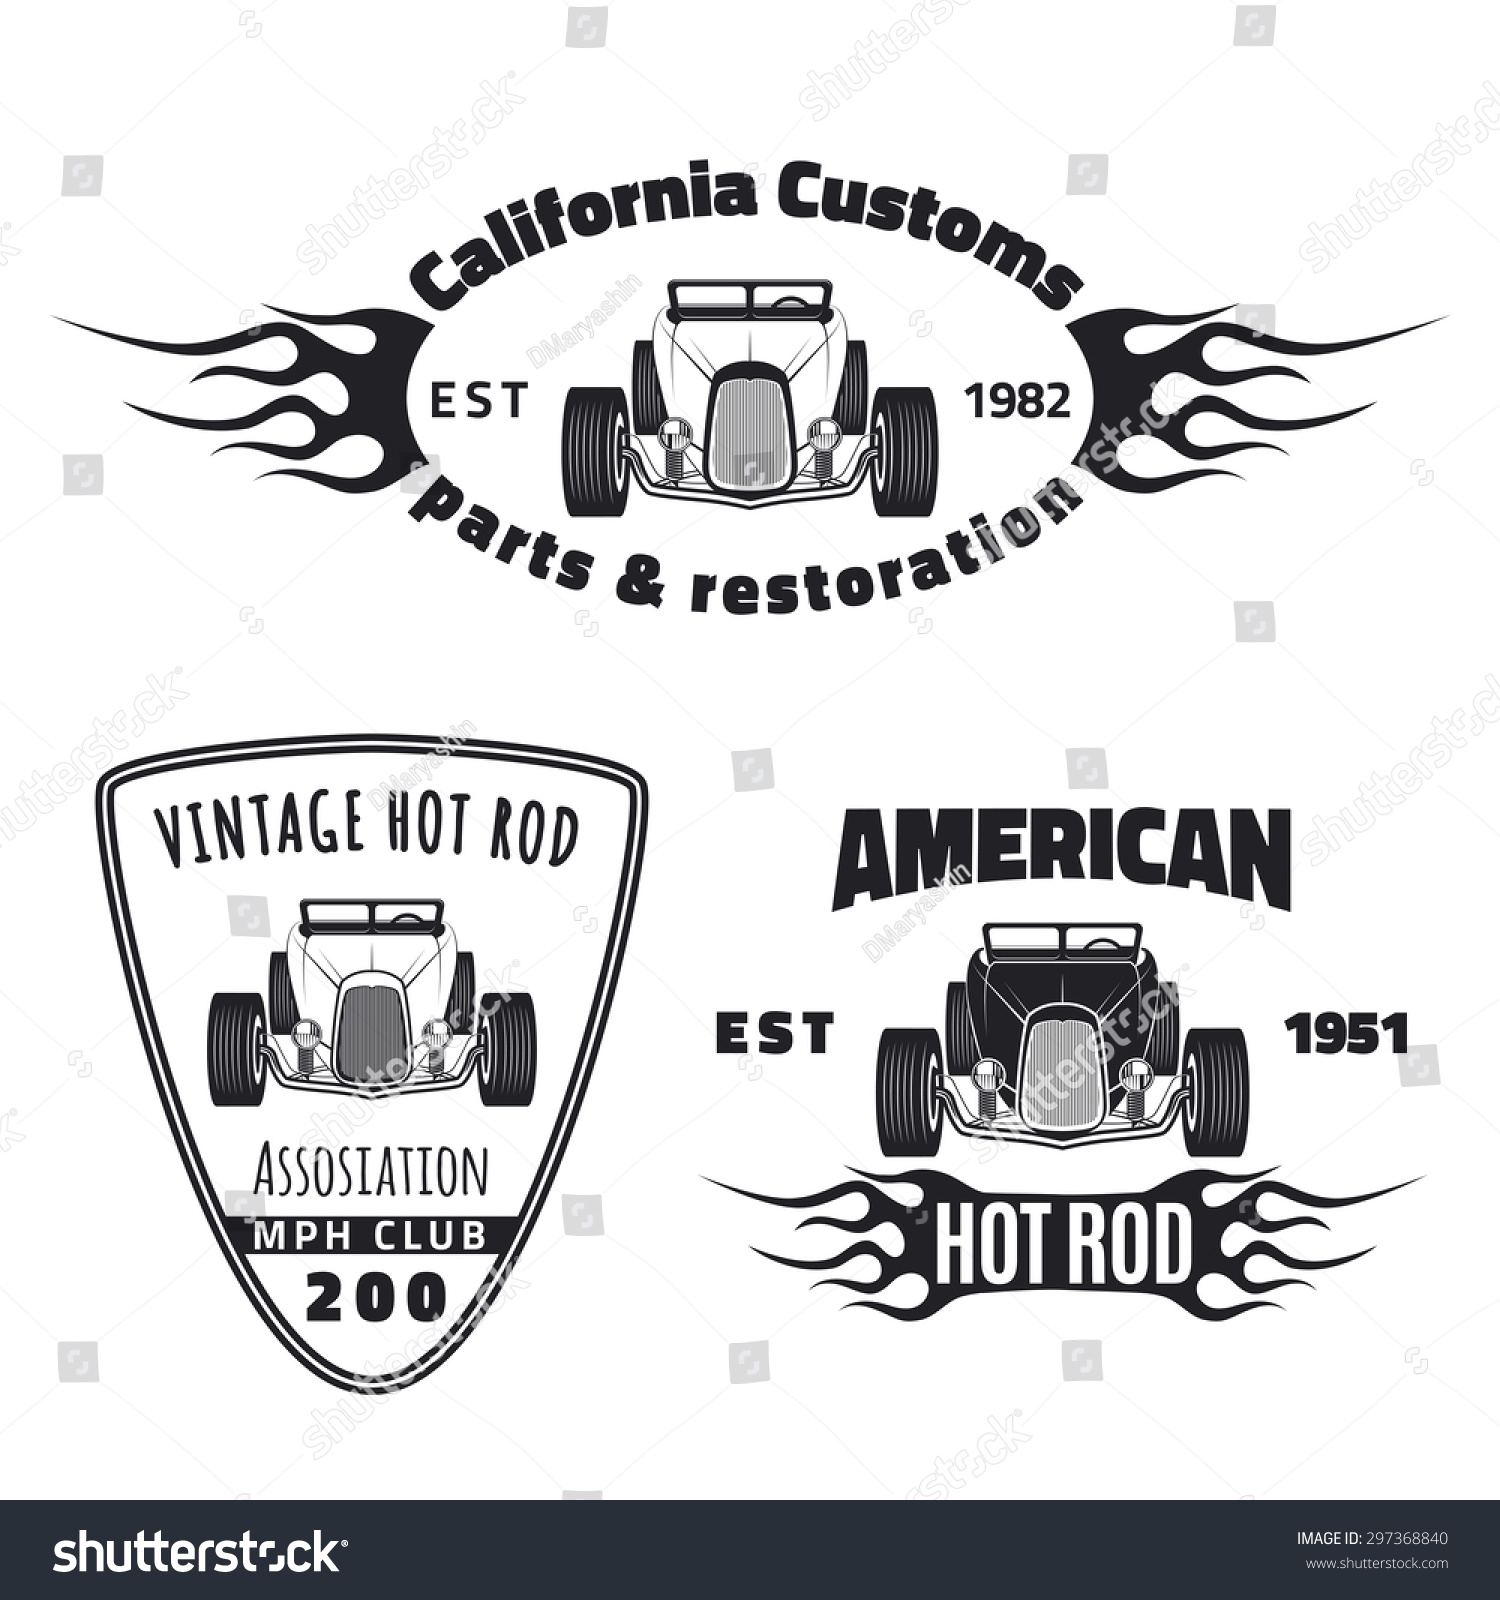 Set of vintage hot rod car labels logos and icons Hot rod car club and classic car restoration emblems Car company logo design